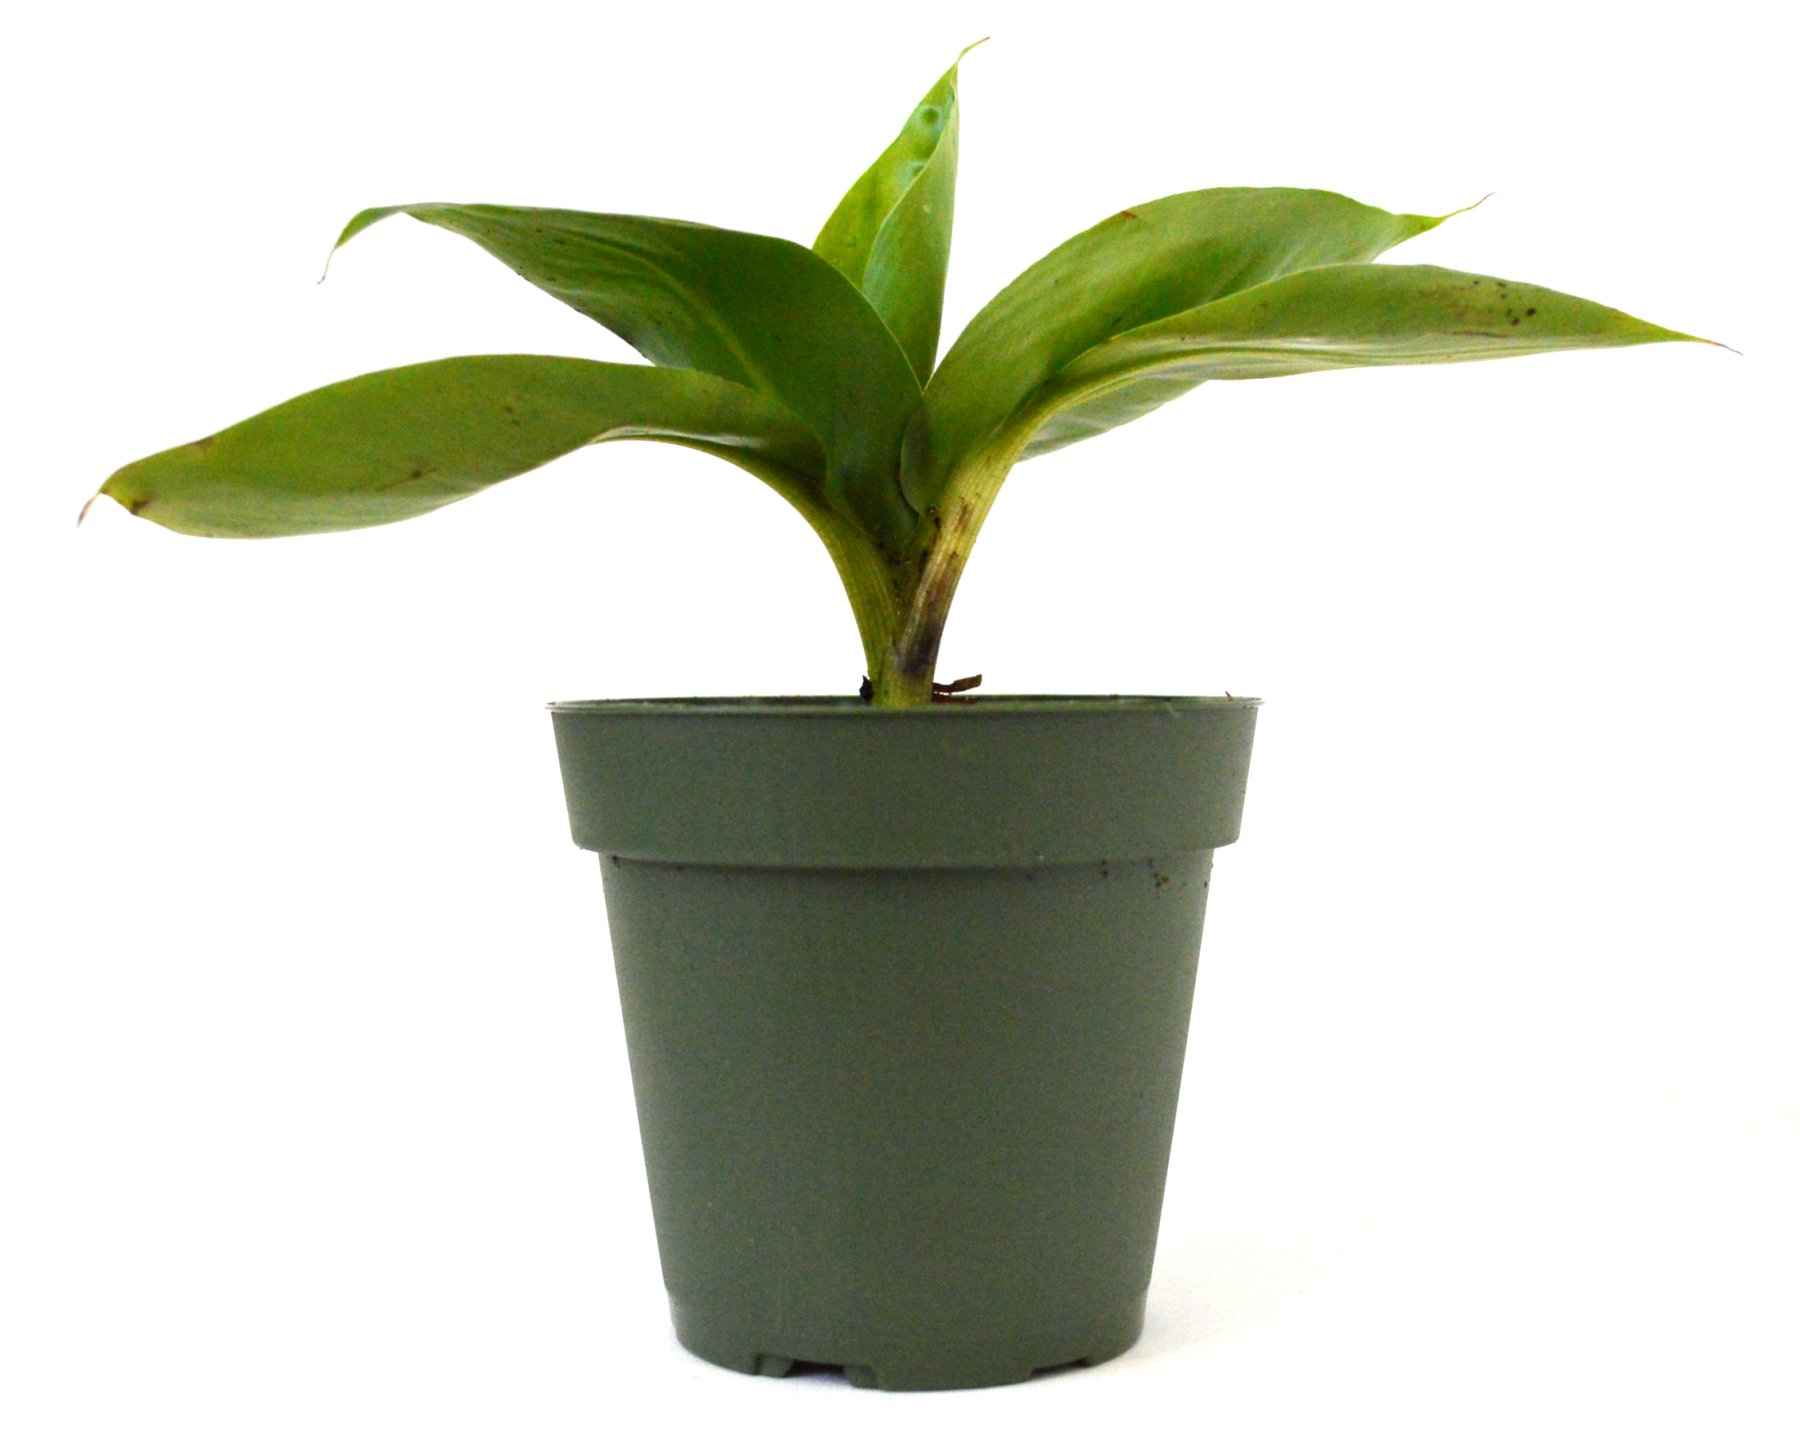 9Greenbox - Dwarf Banana Plant - 4'' Pot